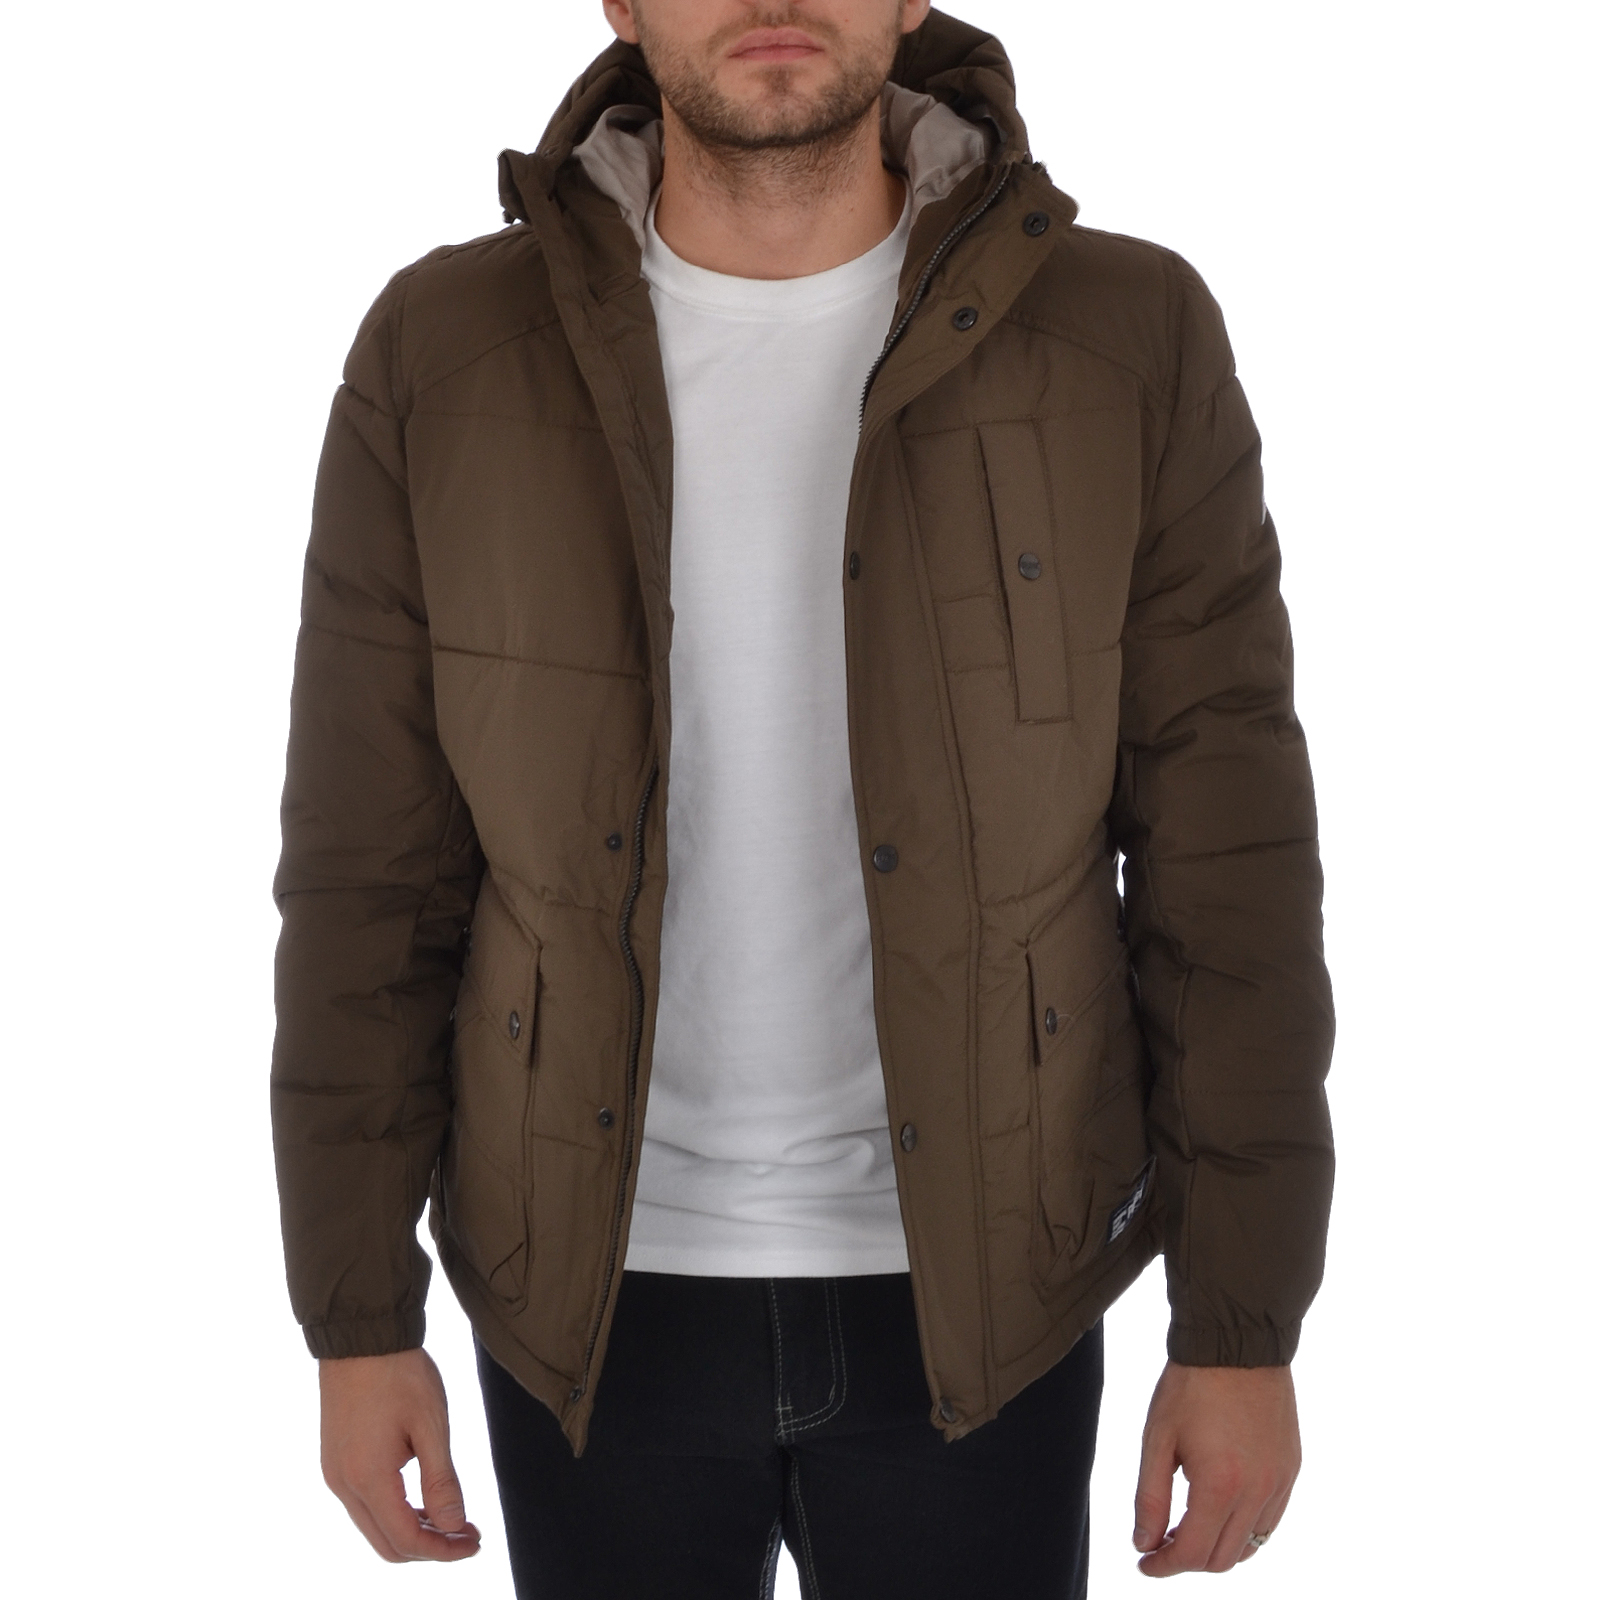 Apr 22,  · The design and features of a jacket, such as a hood and drawcords, the thickness and quality of the outer material, how well the jacket fits, etc. all significantly contribute to how warm a jacket .